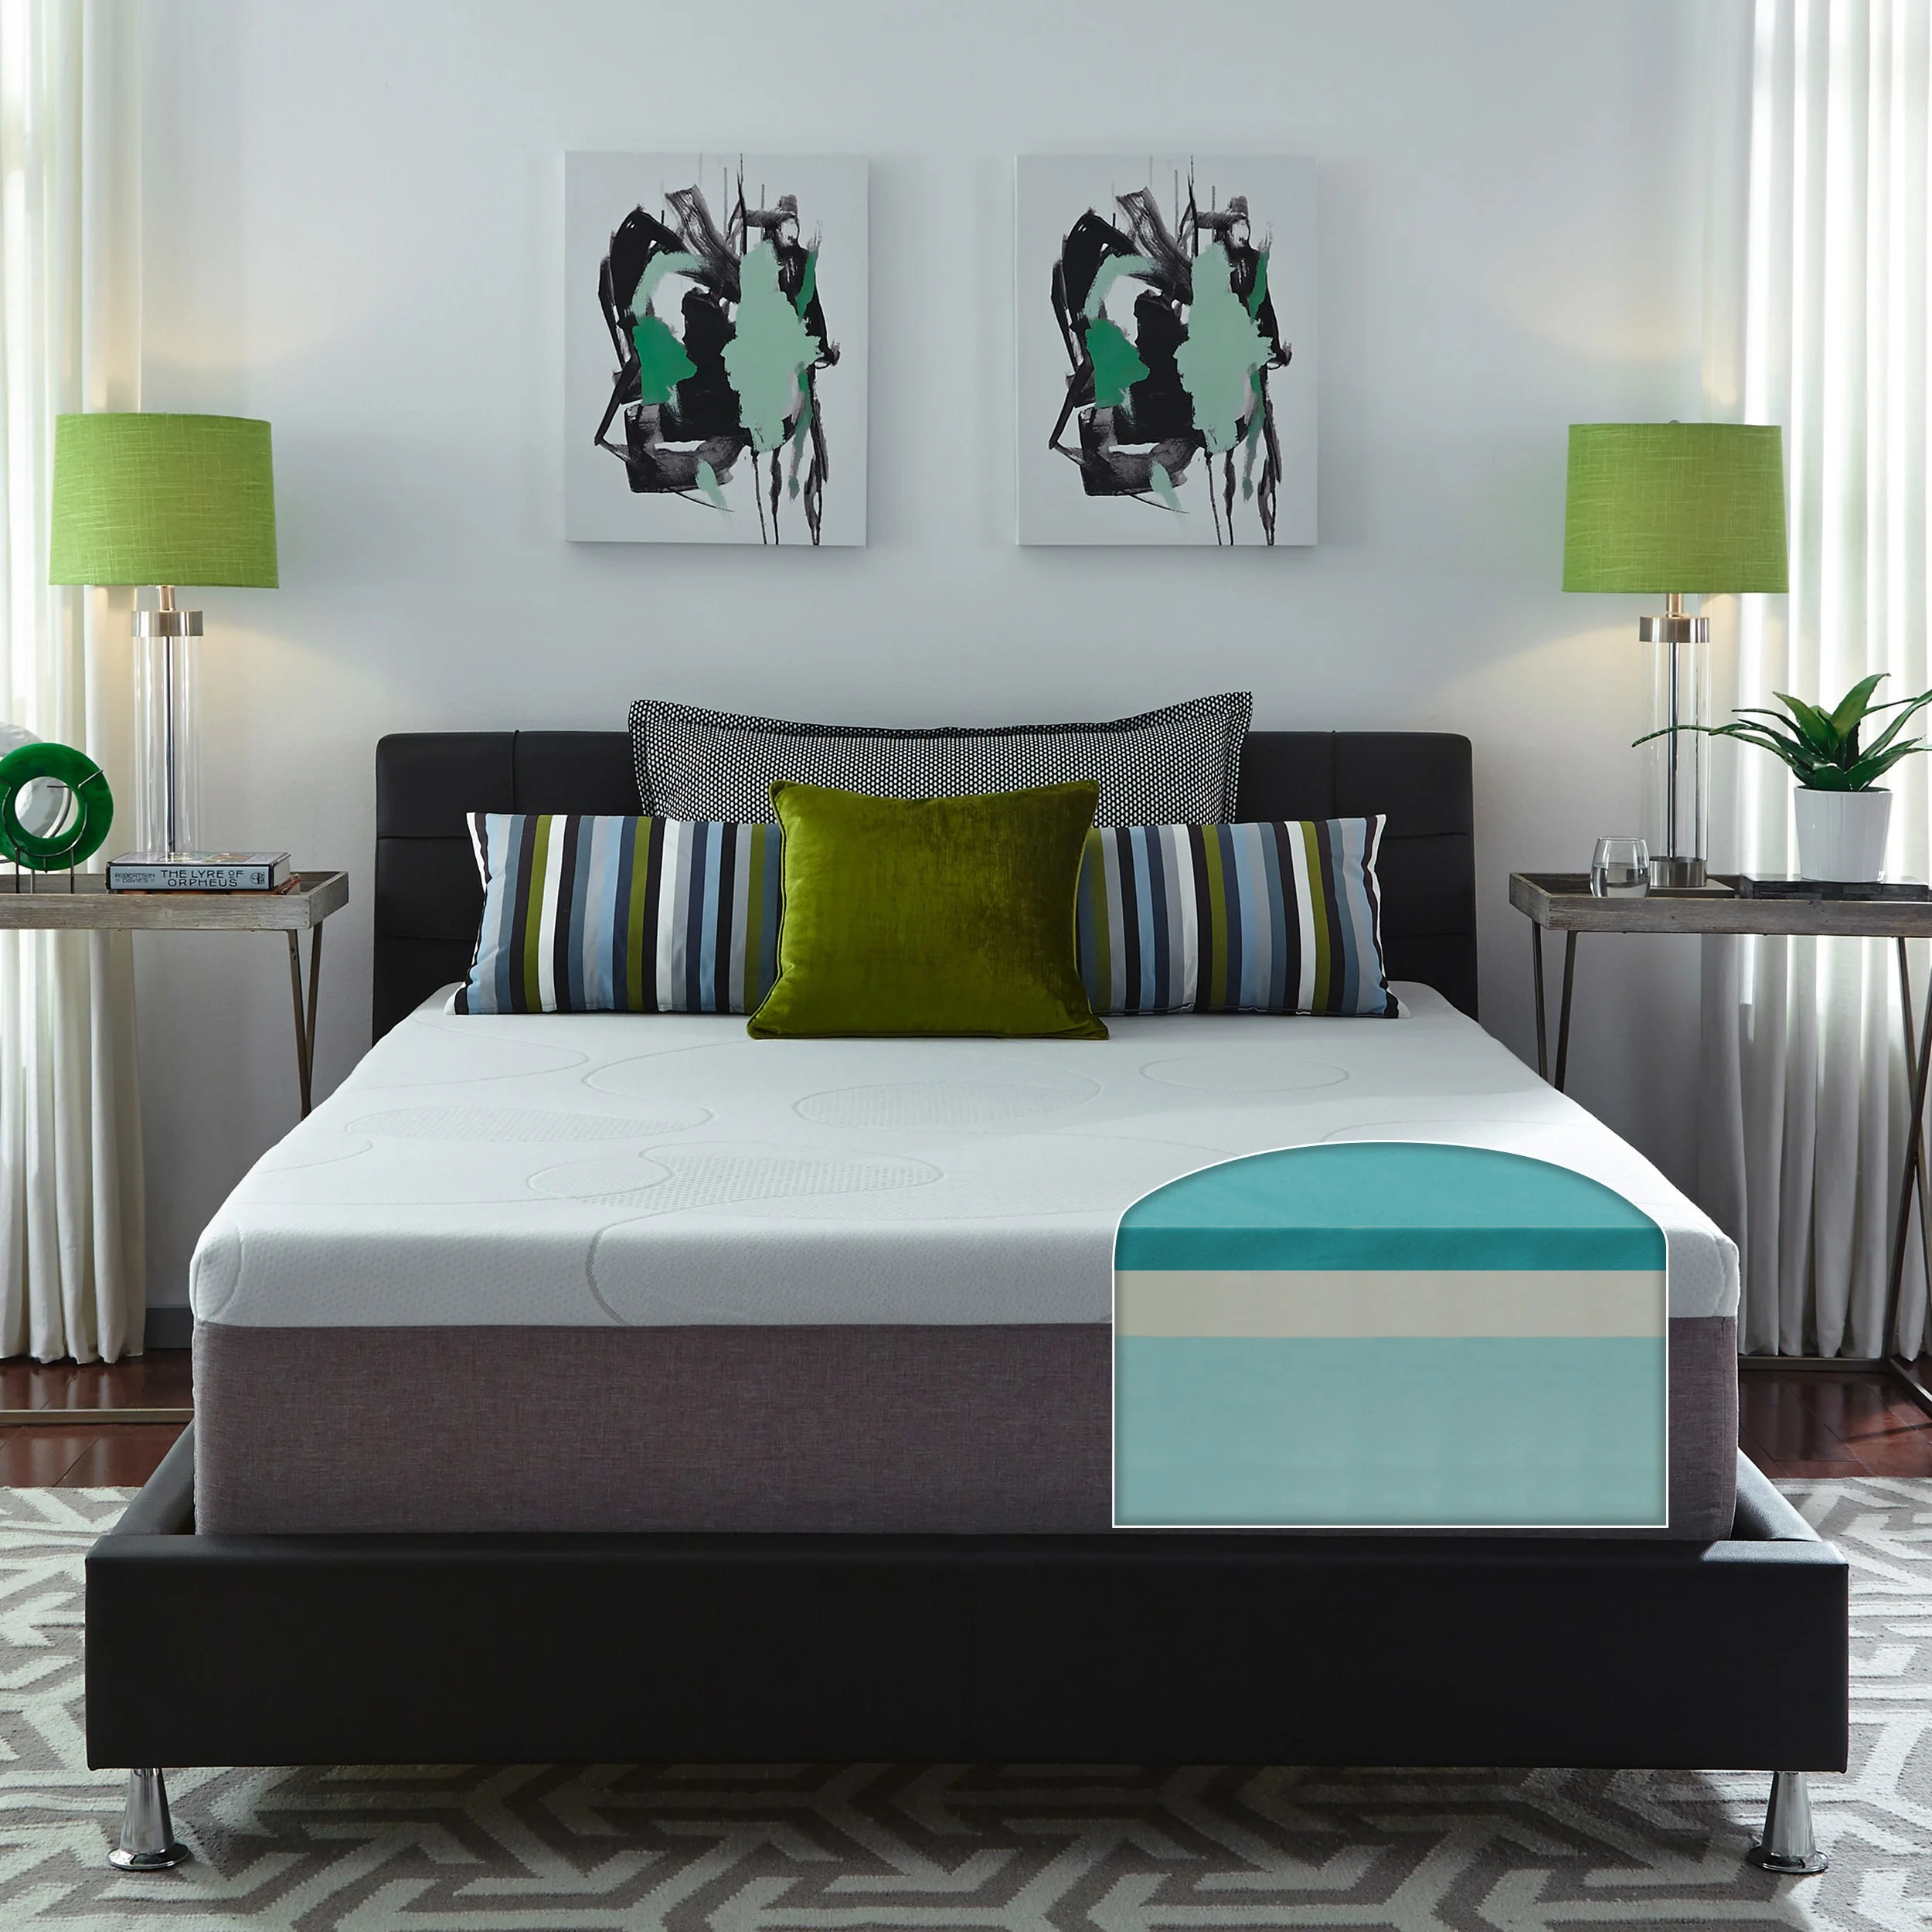 Local Bed Shops Bedroom Furniture Find Great Furniture Deals Shopping At Overstock